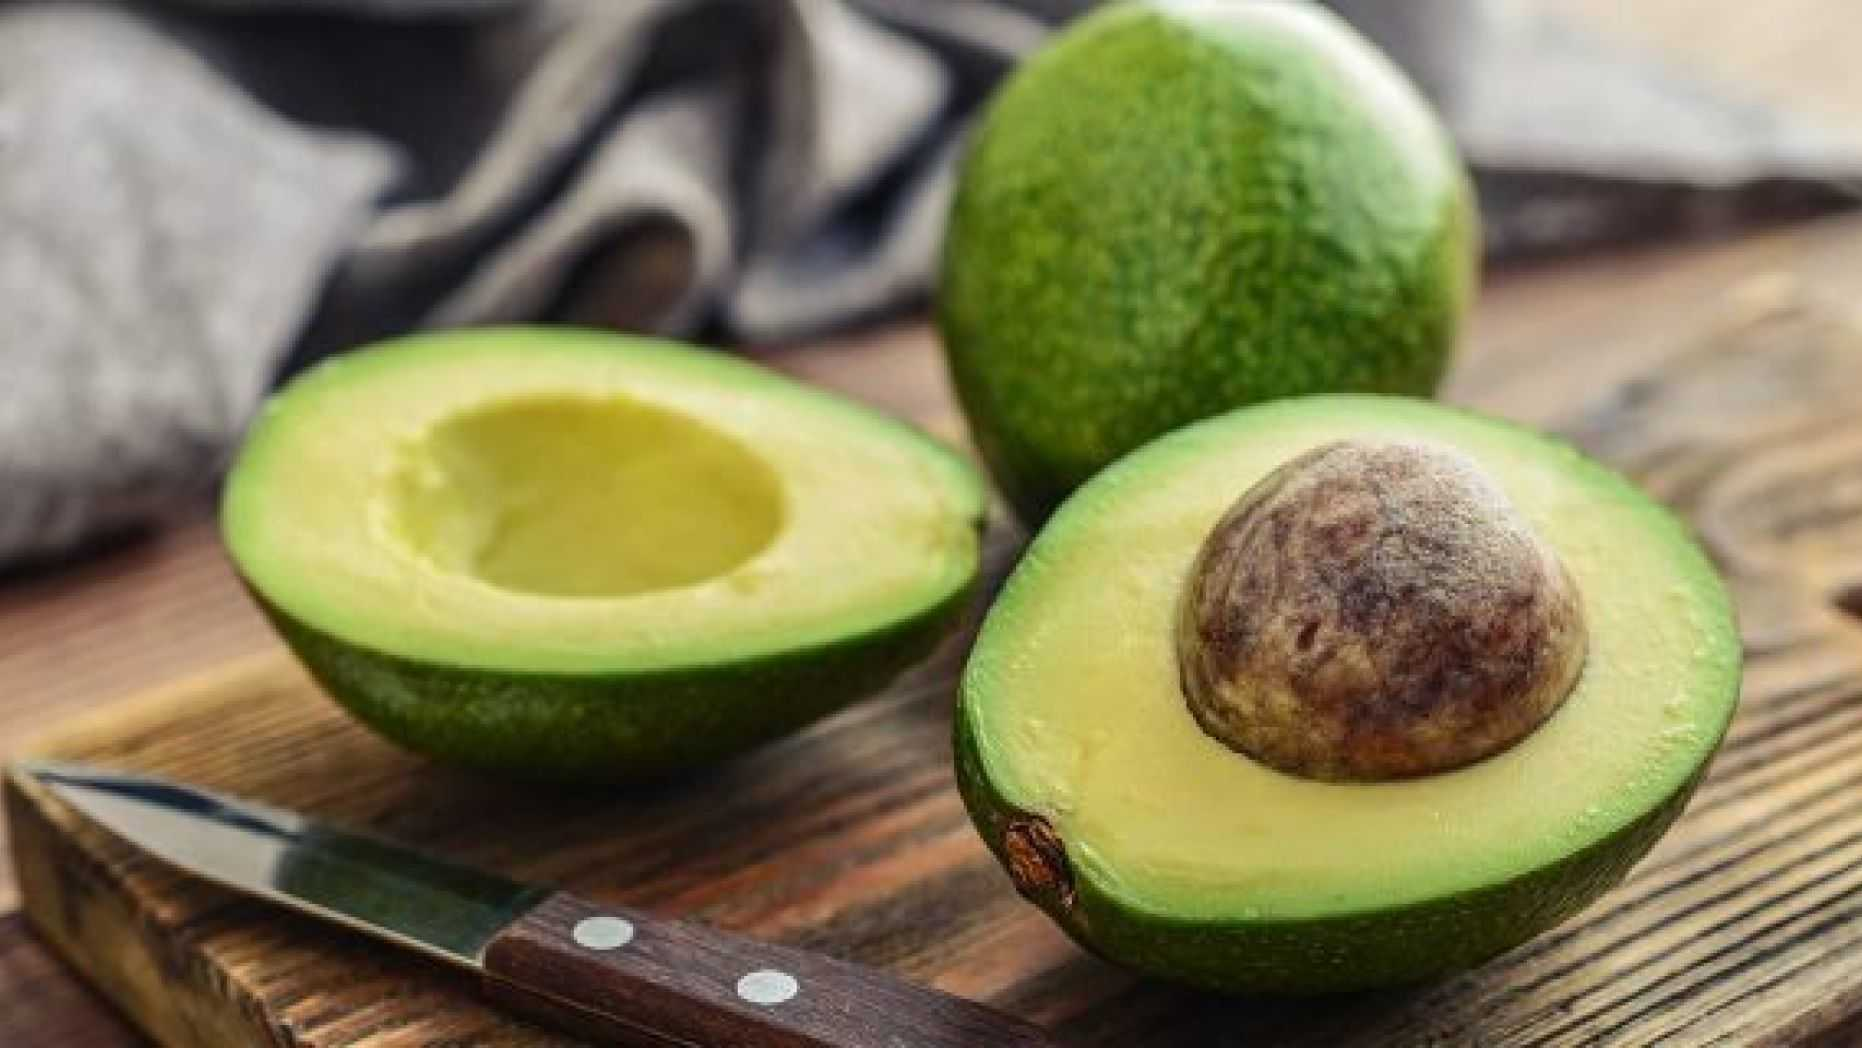 Avocado: Nutrition Facts, Health Benefits, Weight Loss & Beauty Affects